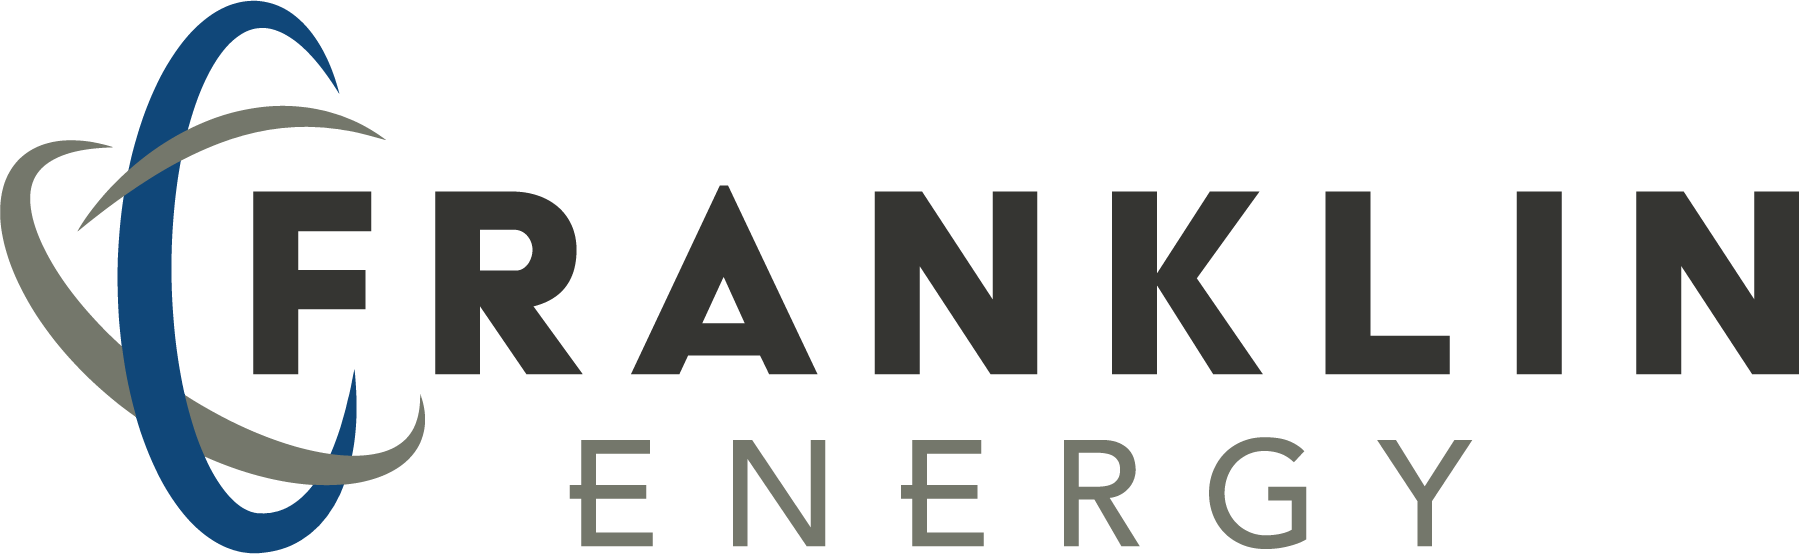 Franklin Energy Acquires PlanetEcosystems